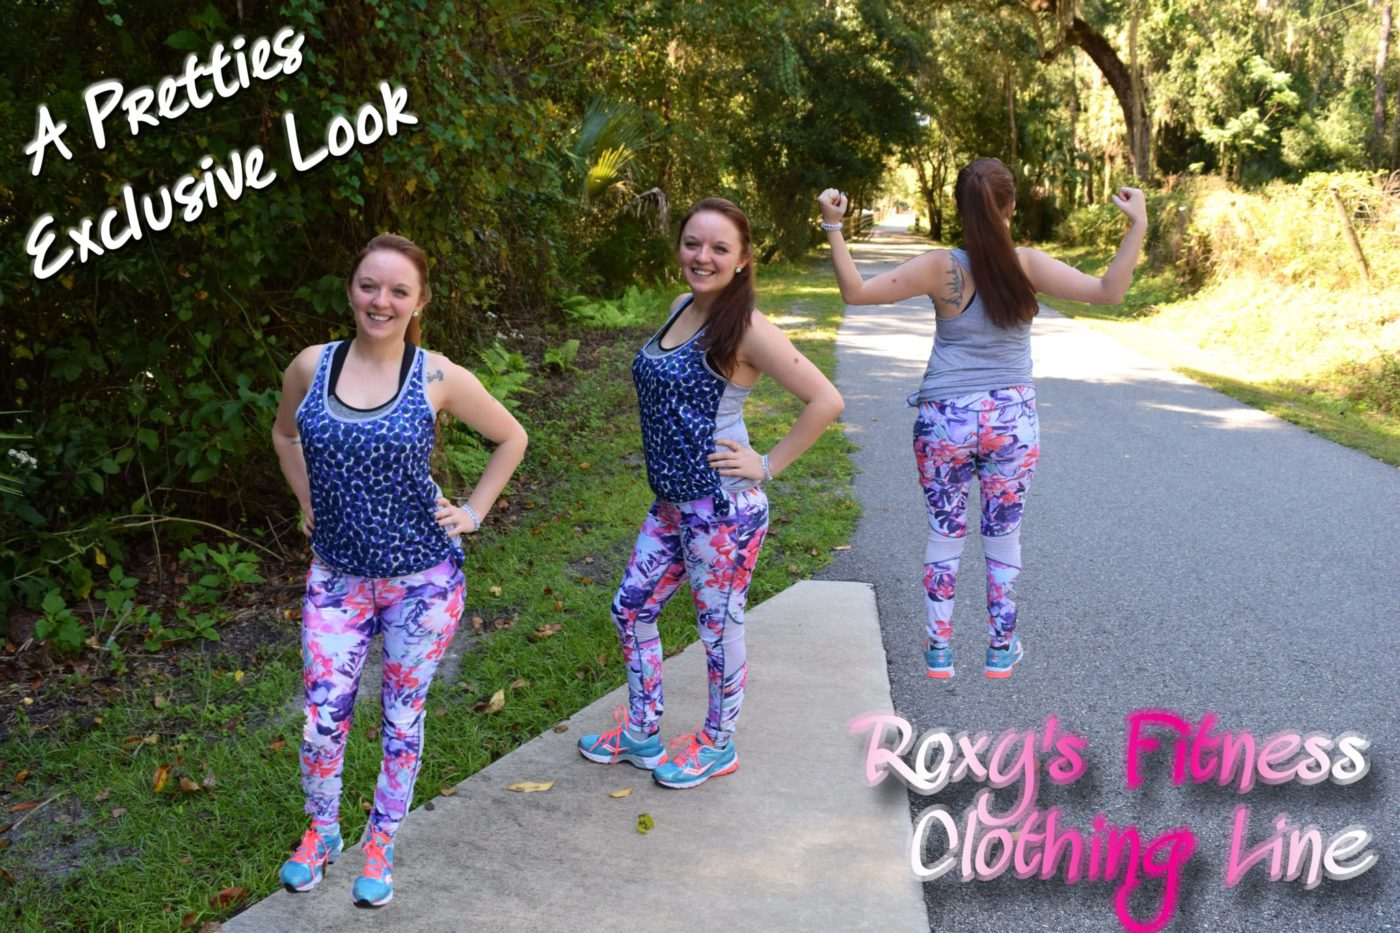 Roxys Fitness Clothing Line Workout Clothes